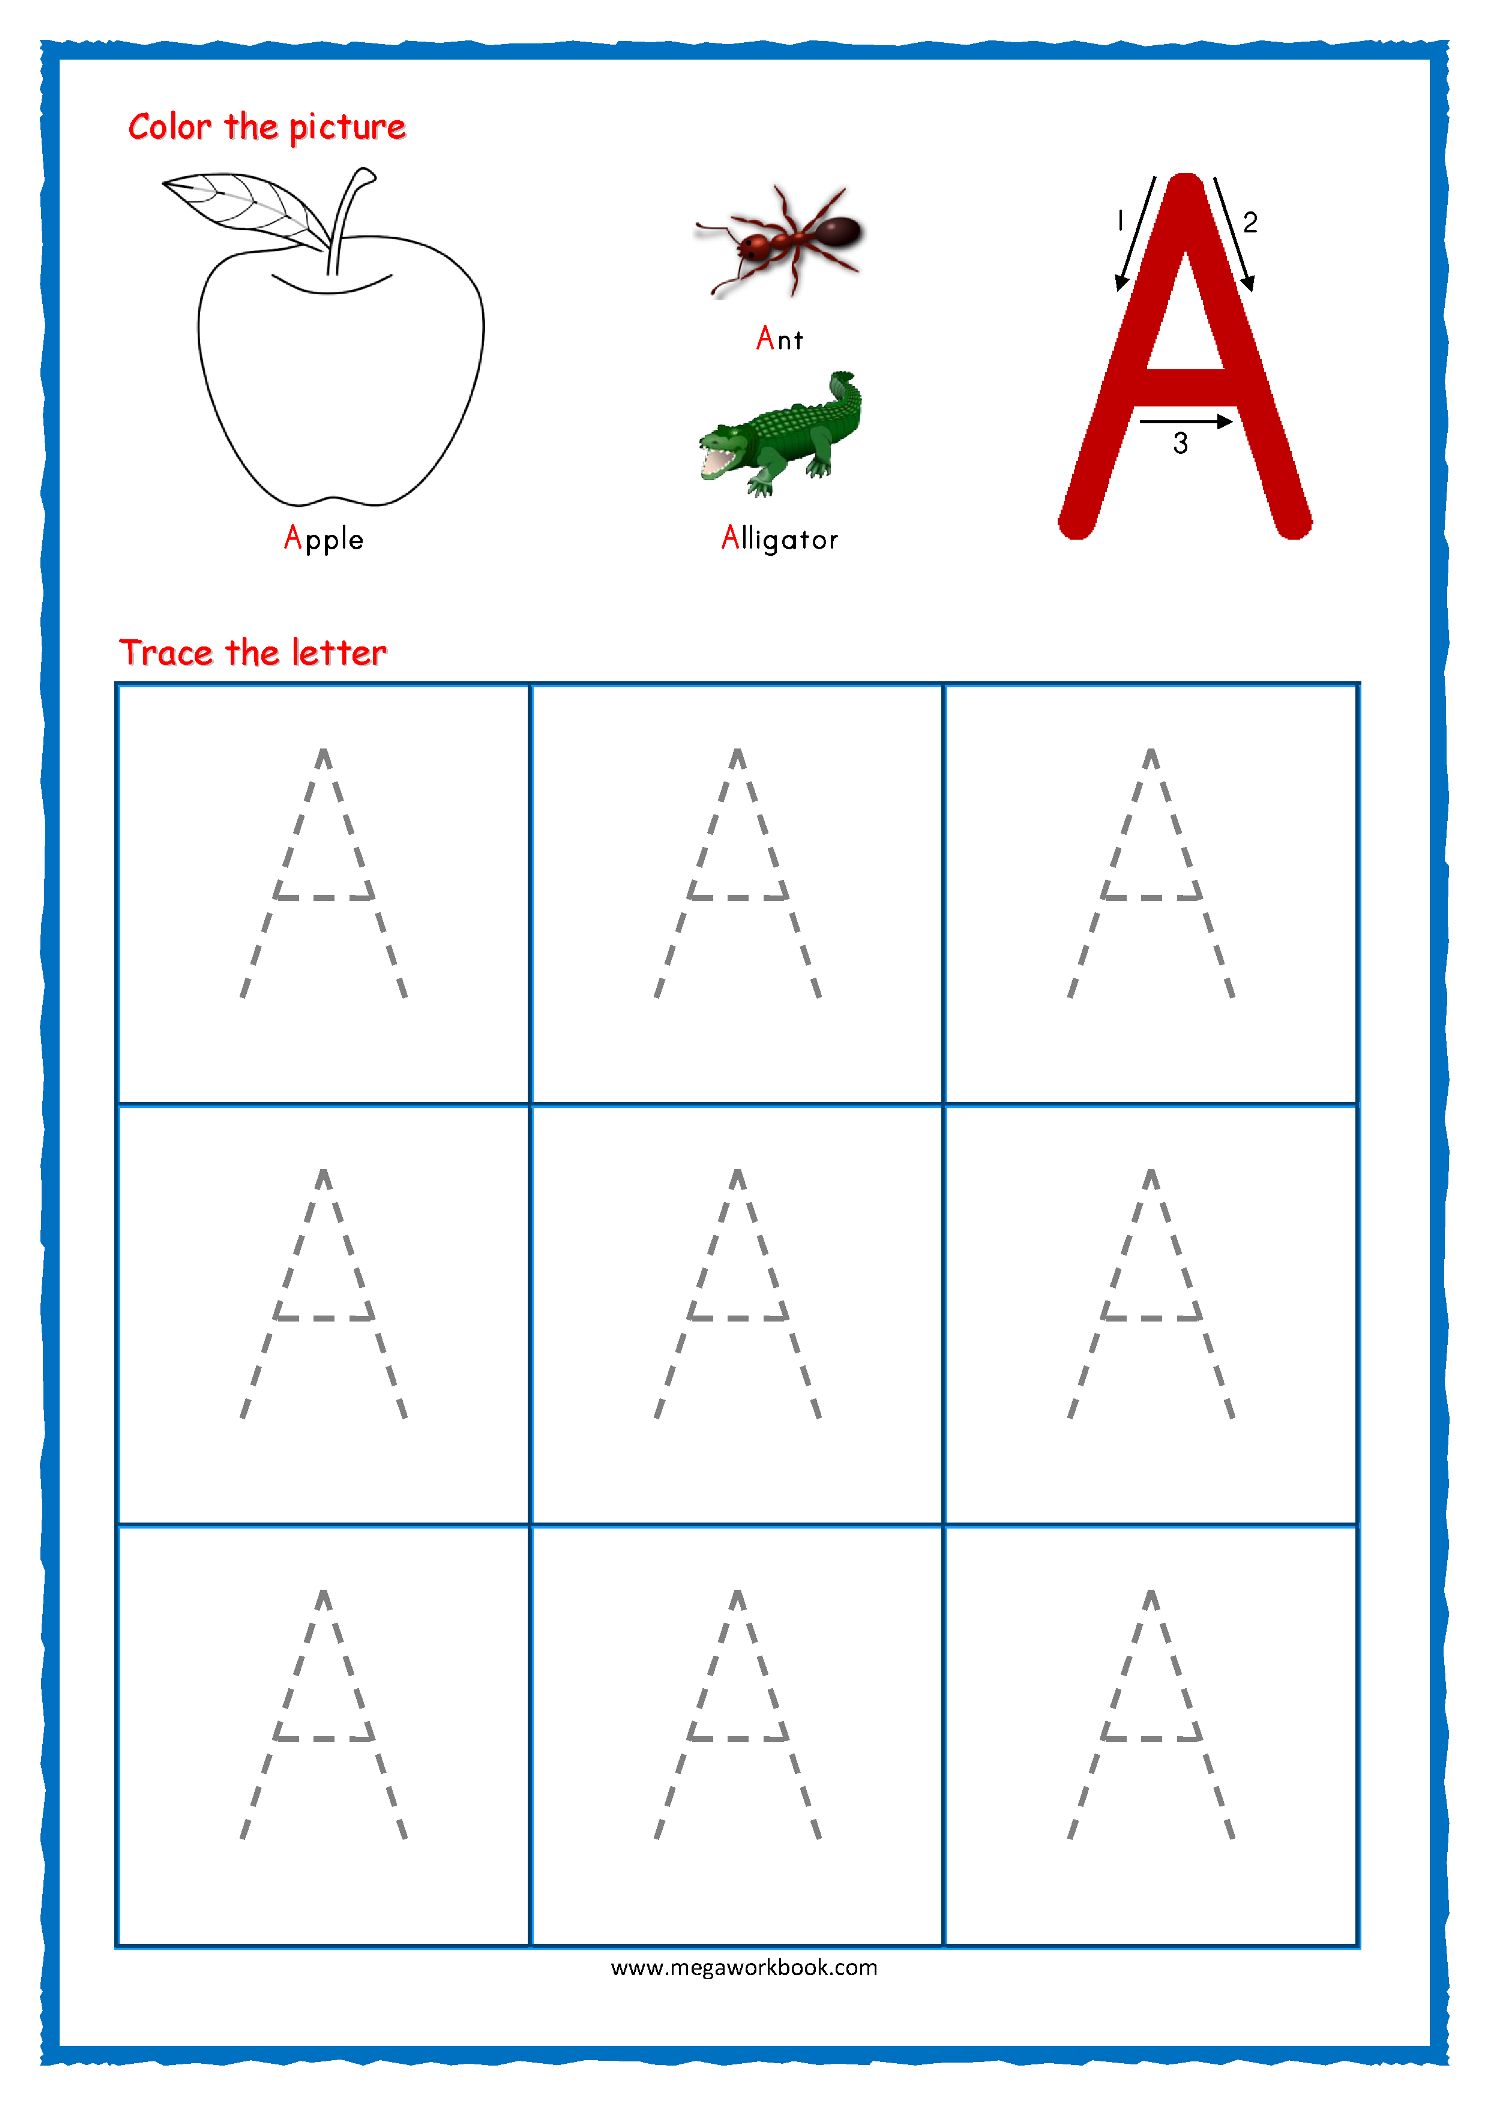 Coloring Book : Coloring Book Alphabet Tracing Worksheets within Tracing Letter I Worksheets Free